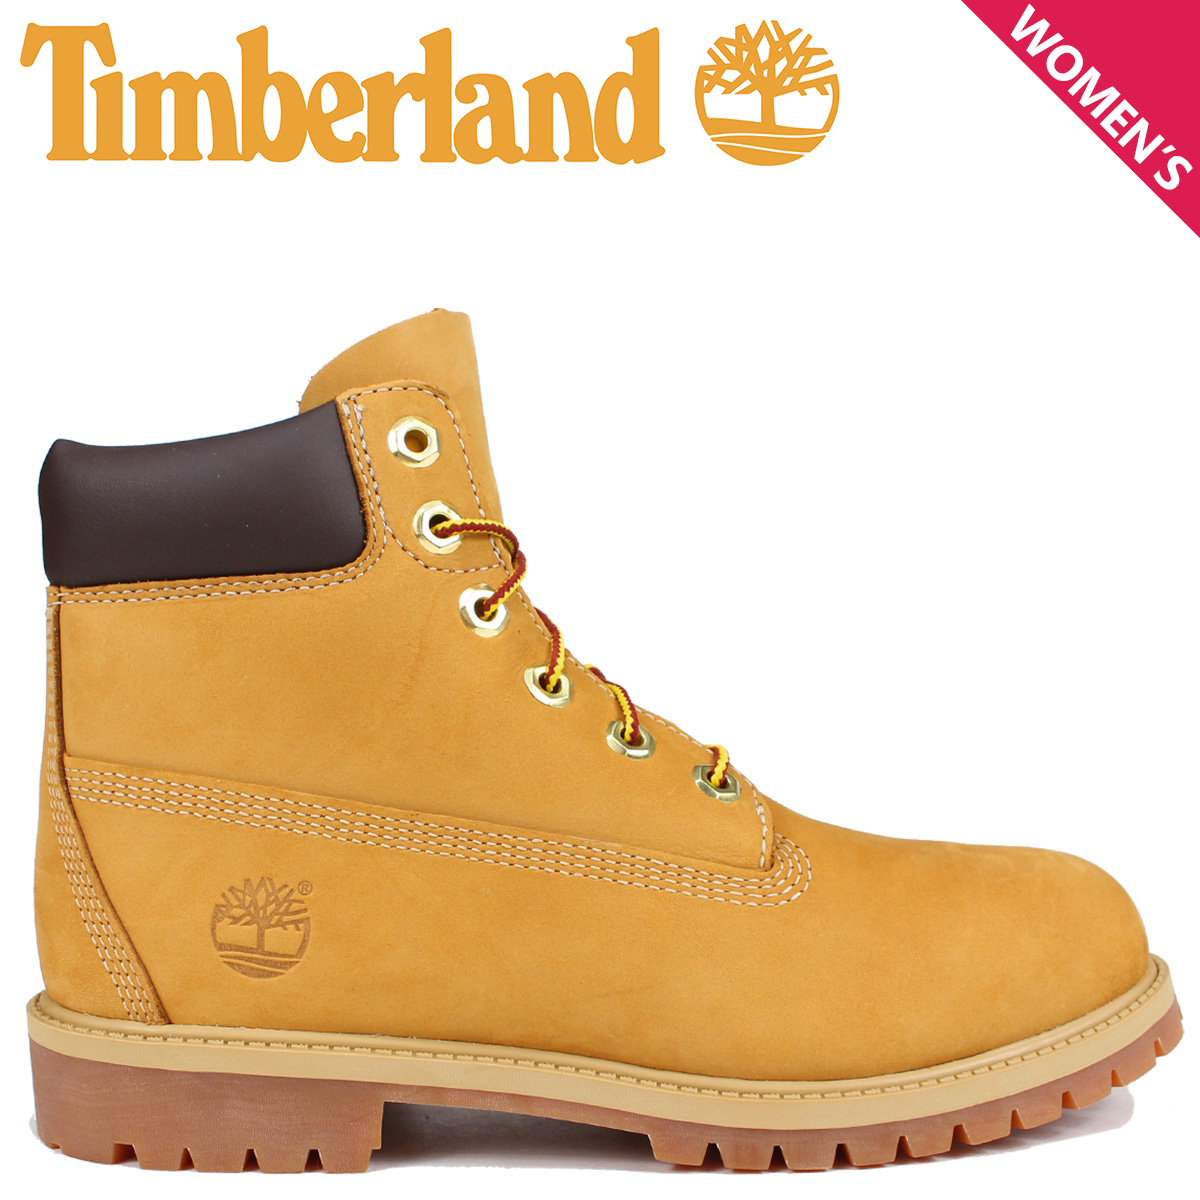 Sugar Online Shop: Timberland Lady's boots